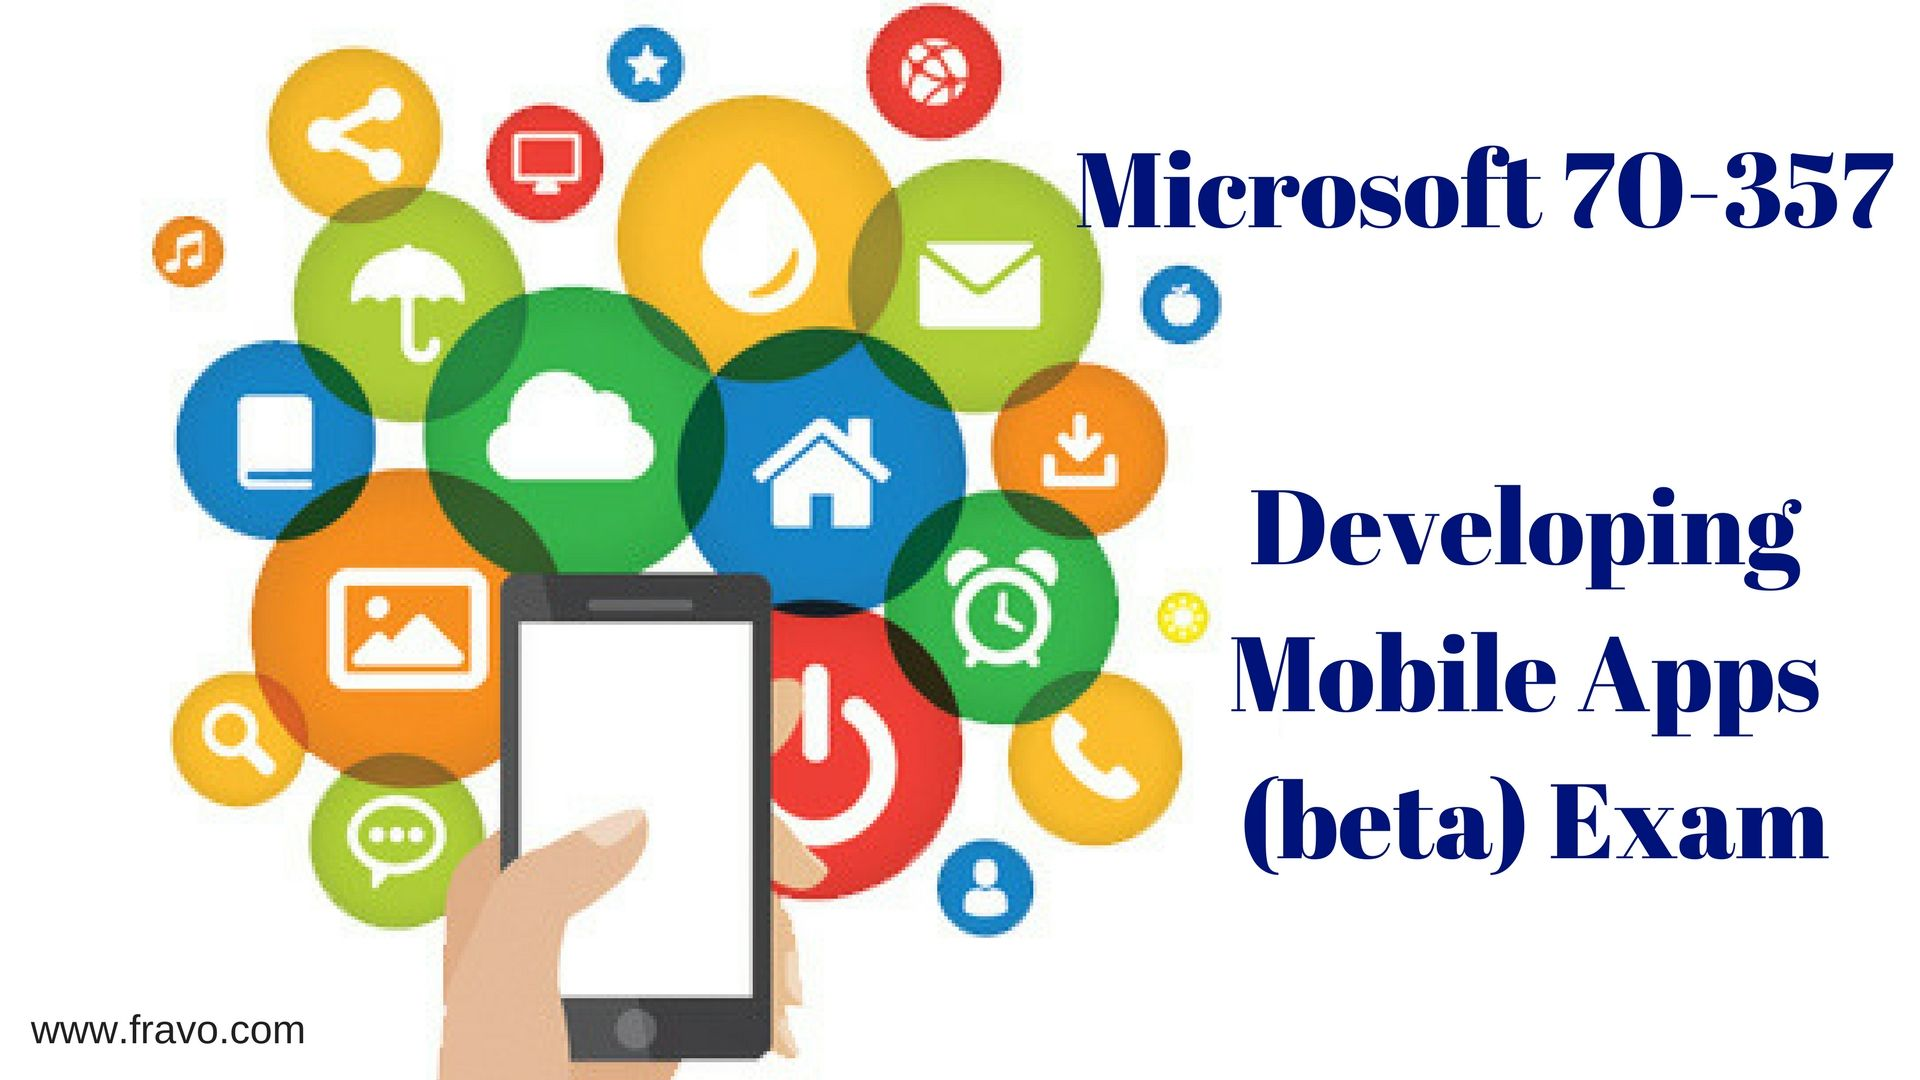 The Best Known Way To Get Exam Dumps For Microsoft Developing Mobile